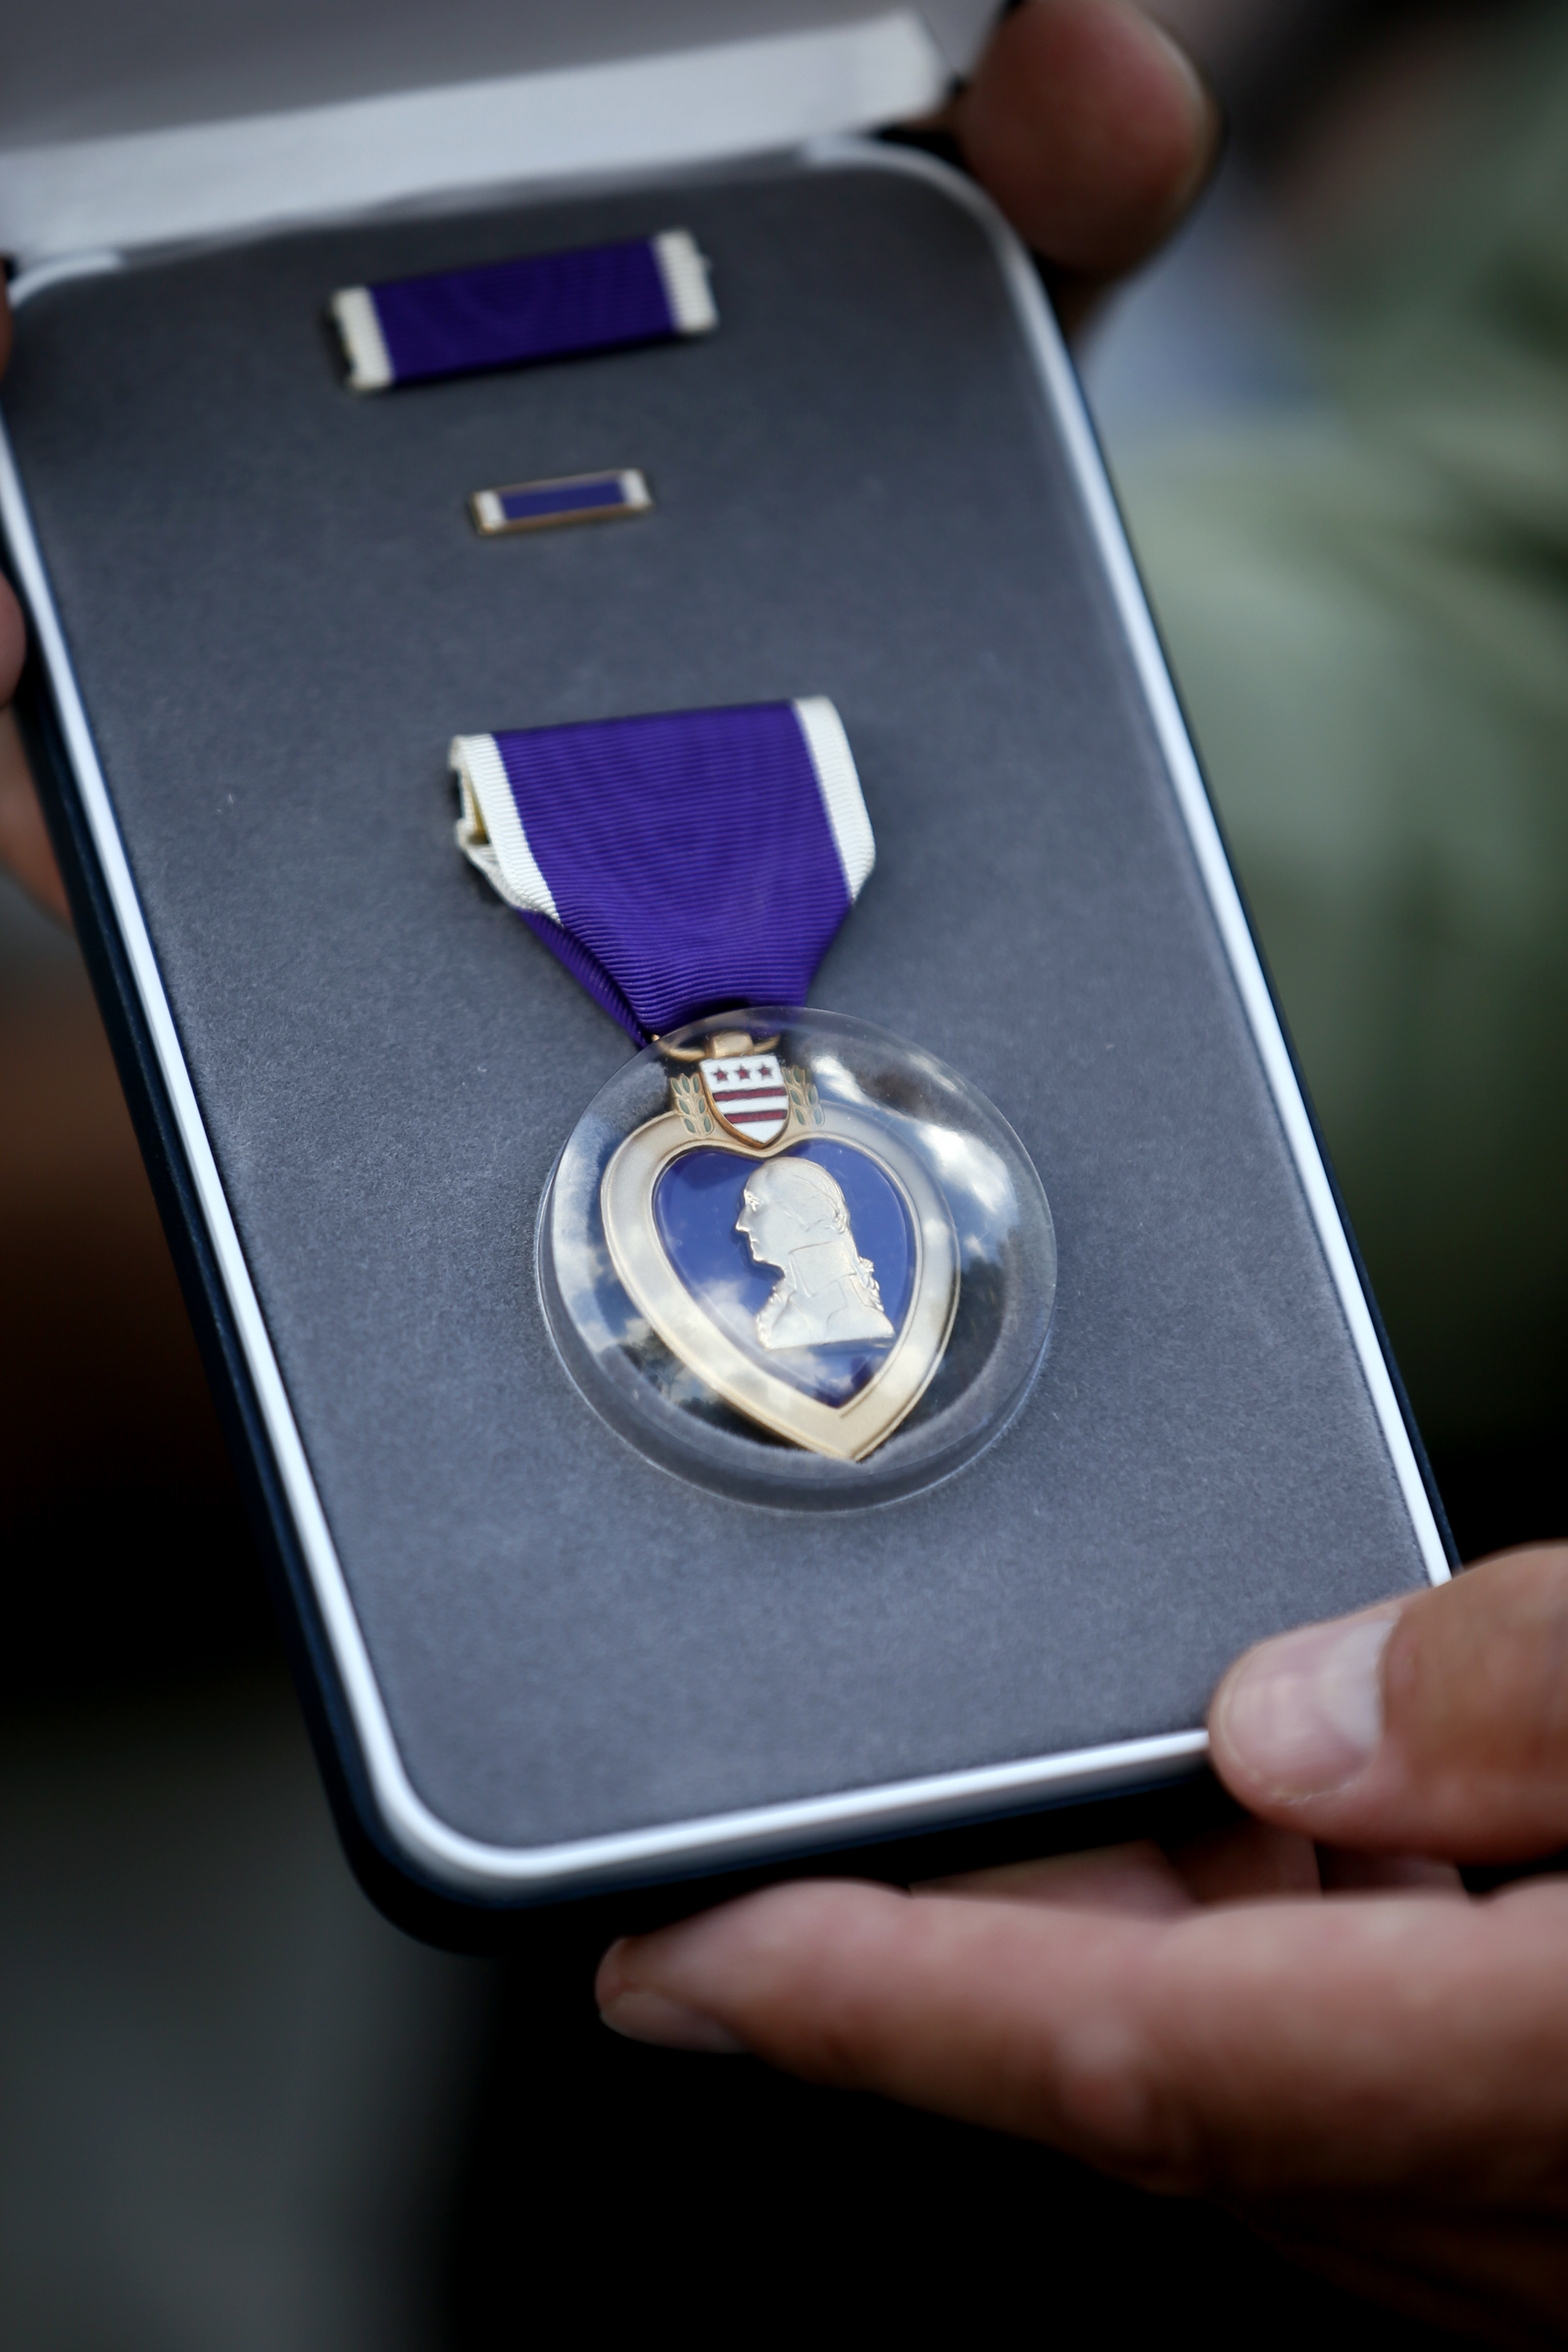 Stephen Dufeck never received the Purple Heart for wounds he suffered in Vietnam during an enemy rocket and mortar attack. Now, 45 years later, he will finally get the honor he deserved.] JERRY HOLT • jerry.holt@startribune.com